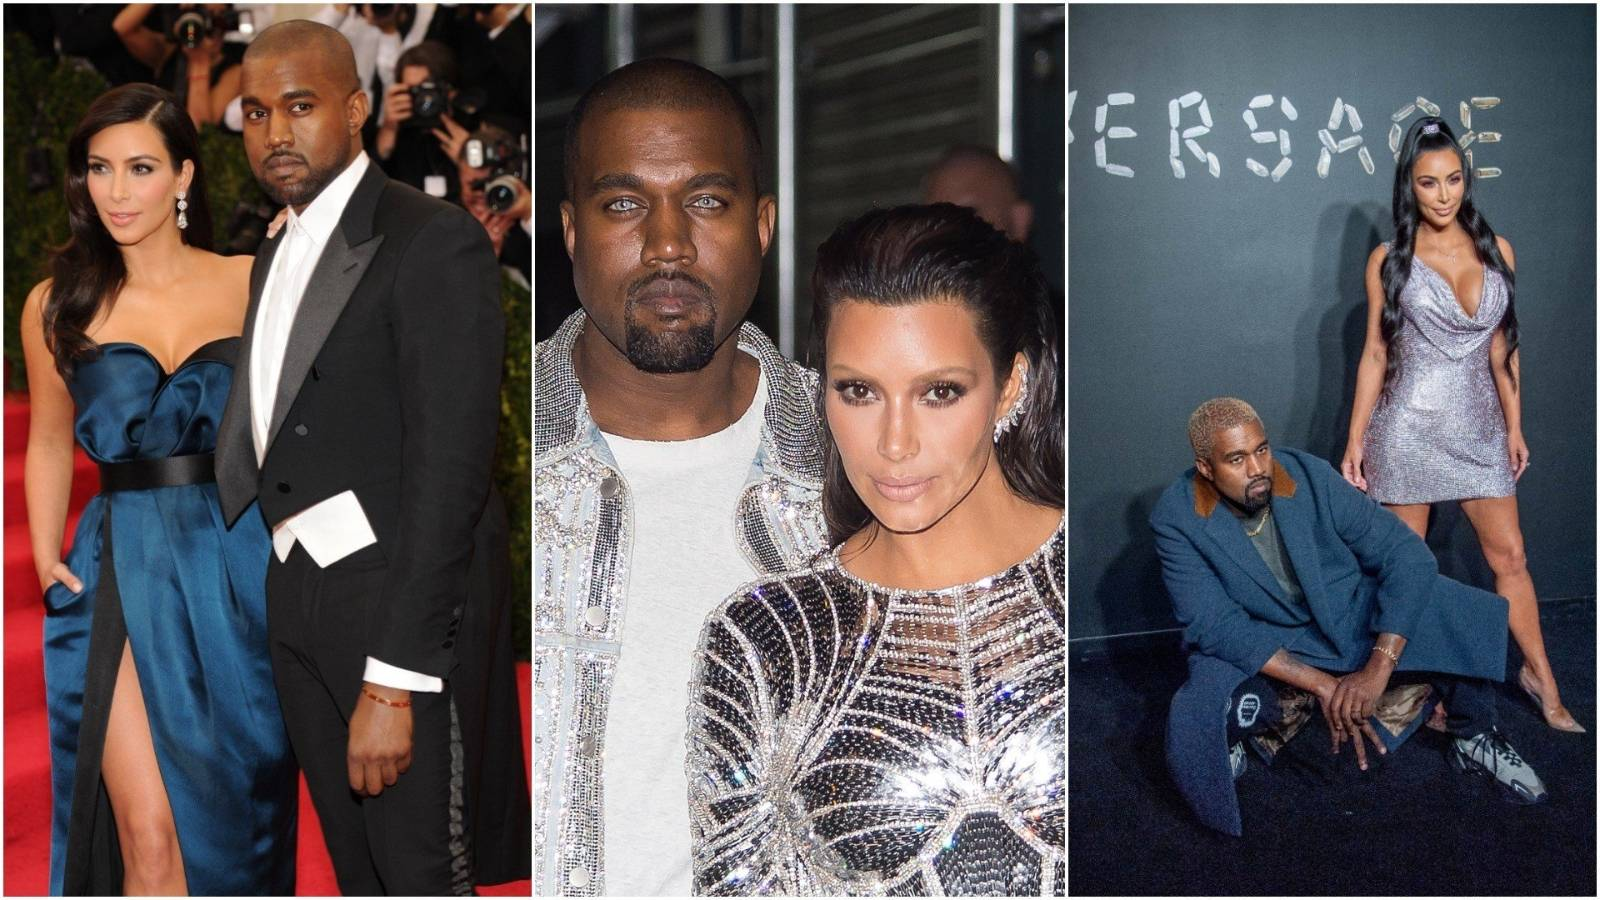 Best & worst dressed celebrities: Kim and Kanye